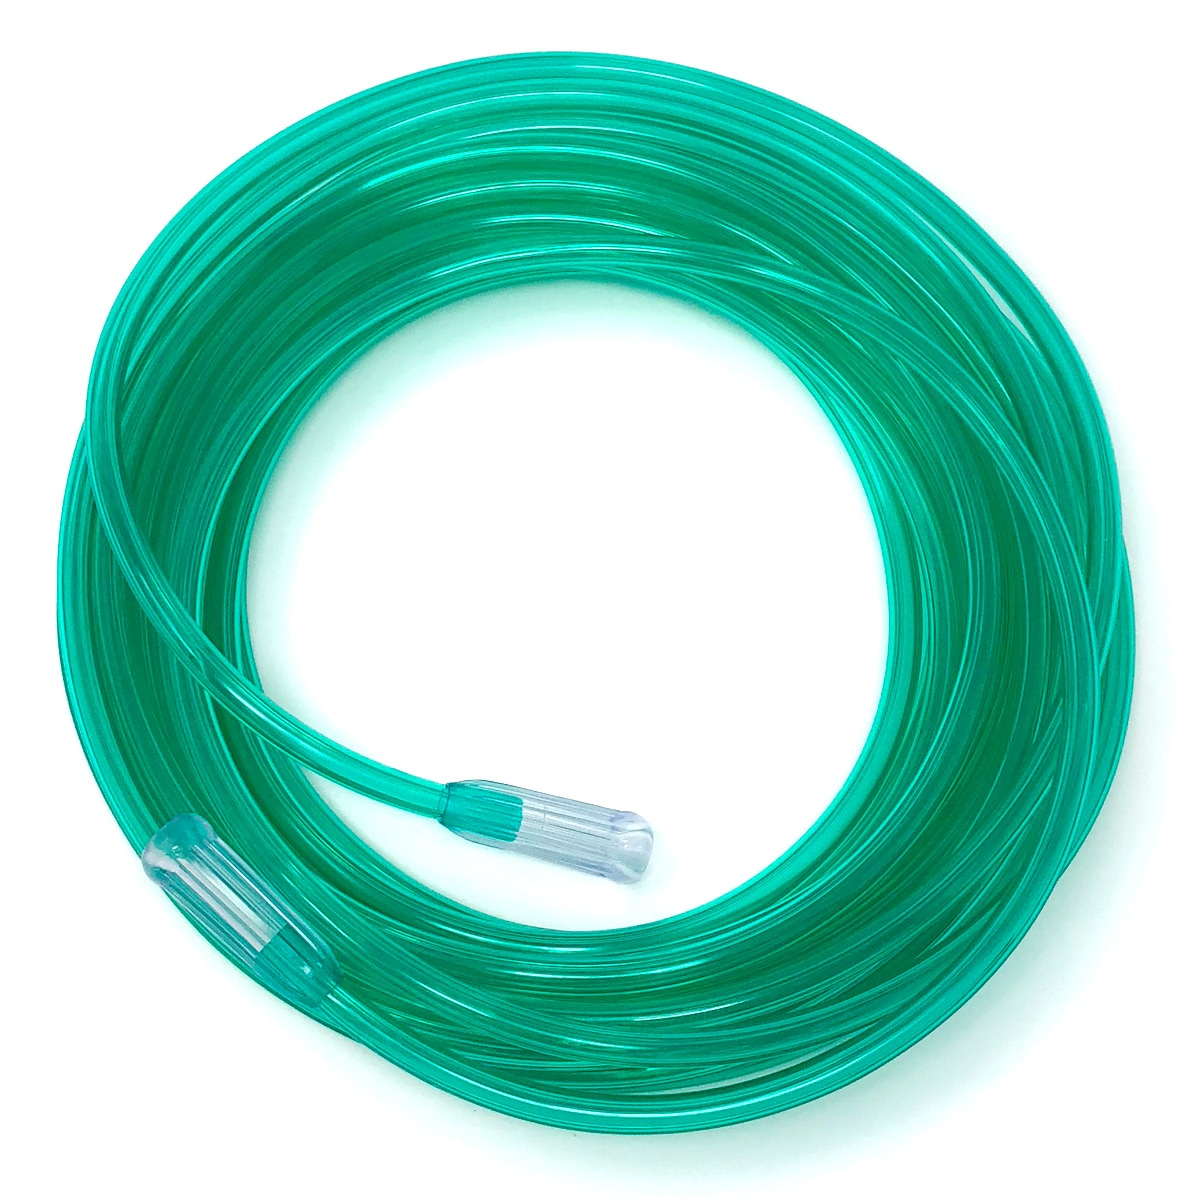 50Foot Green Oxygen Tubing  Ships Free